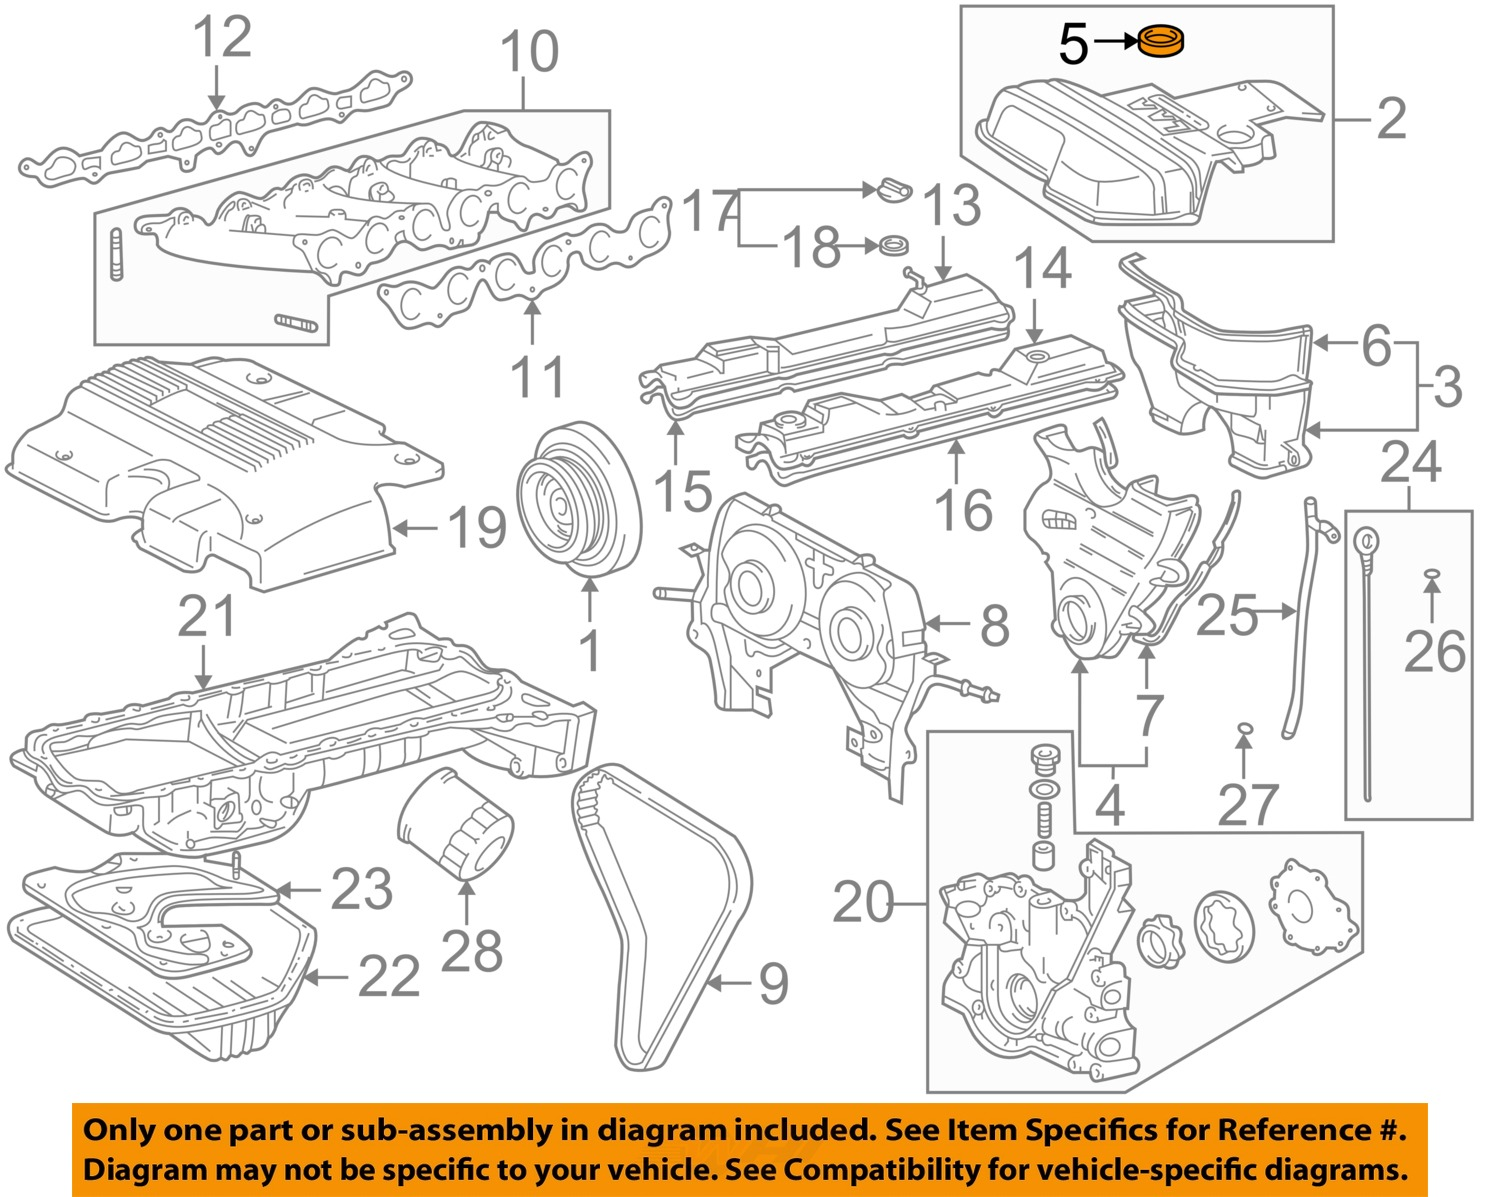 lexus toyota oem 01 02 is300 3 0l l6 engine outer timing cover seal lexus is300 engine diagram  lexus es300 engine diagram lexus toyota oem 01 02 is300 3 0l